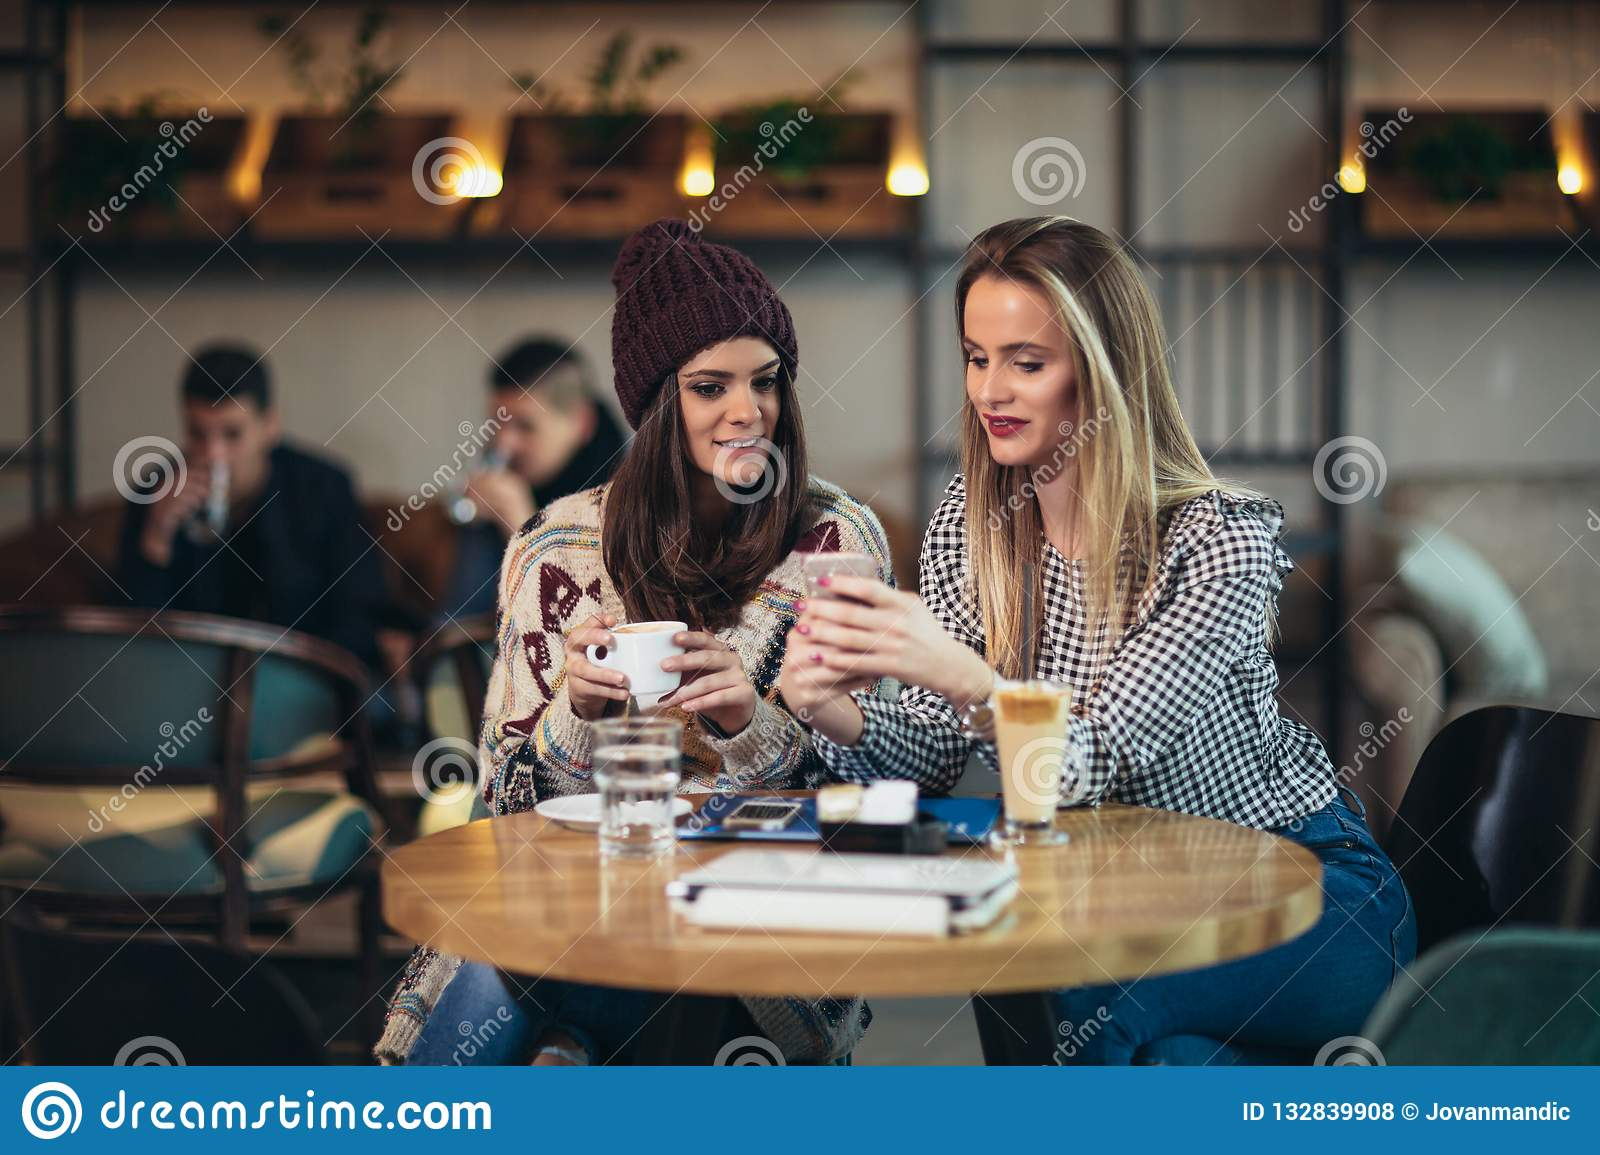 Friends enjoying coffee together in a coffee shop and using phone